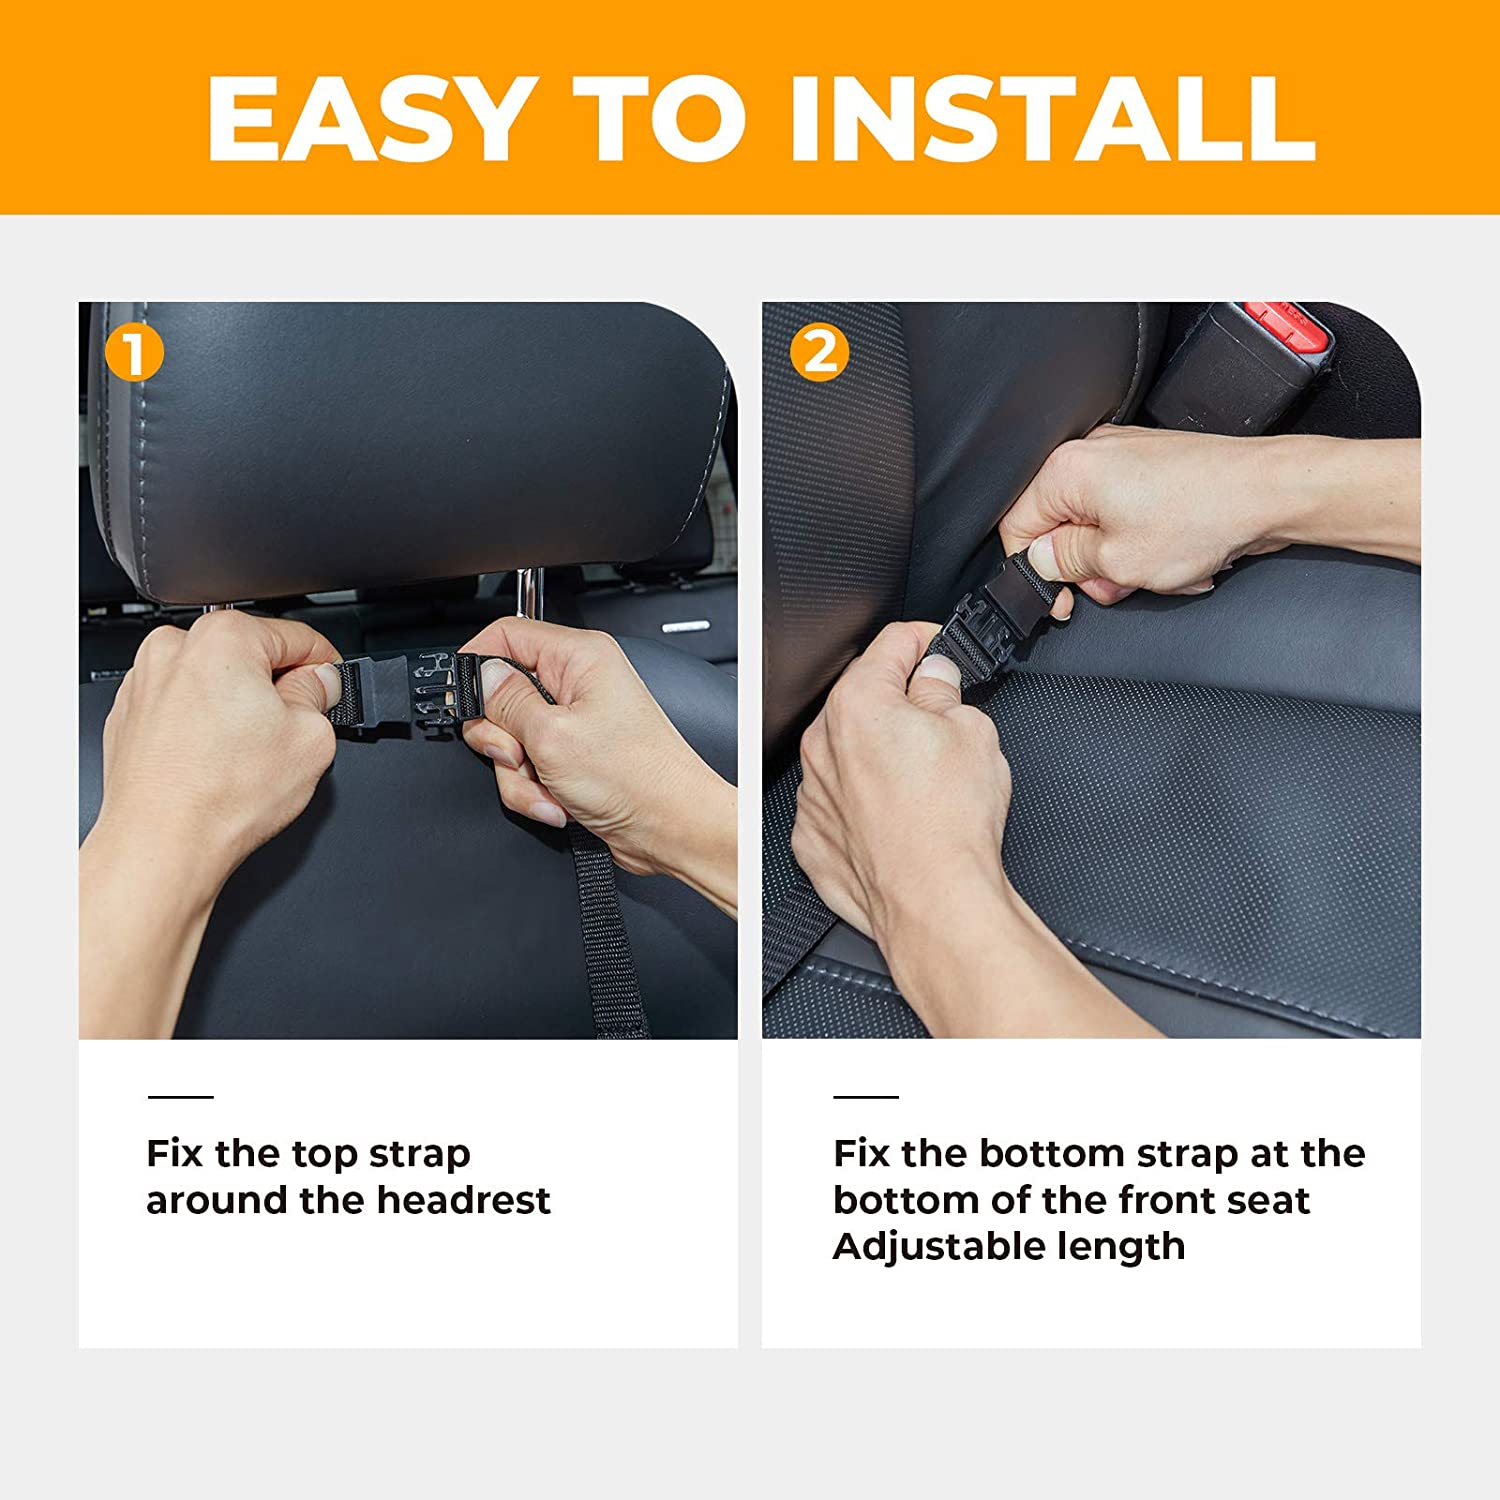 JOYTUTUS Backseat Car Organizer Black 2 Pack Car Organizer Backseat Kids Universal Kick Mats Back Seat Protector with Clear Screen Tablet Holder for Toys Drinks Book Kids Toddler Tra